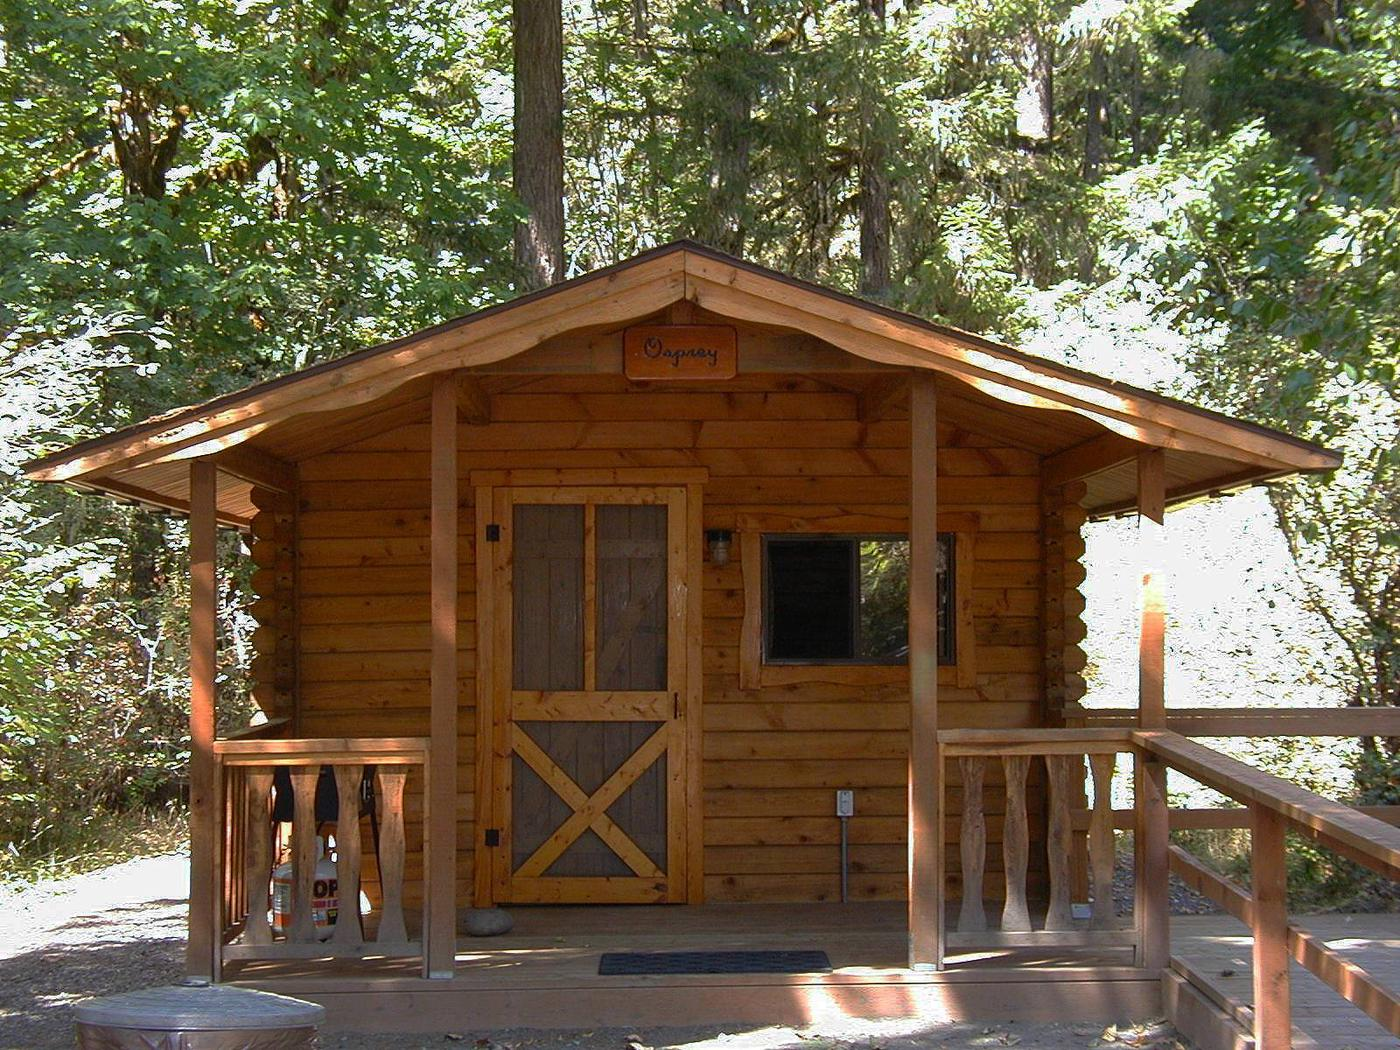 one of the cabins at Fishermen's BendOsprey cabin at Fishermen's Bend